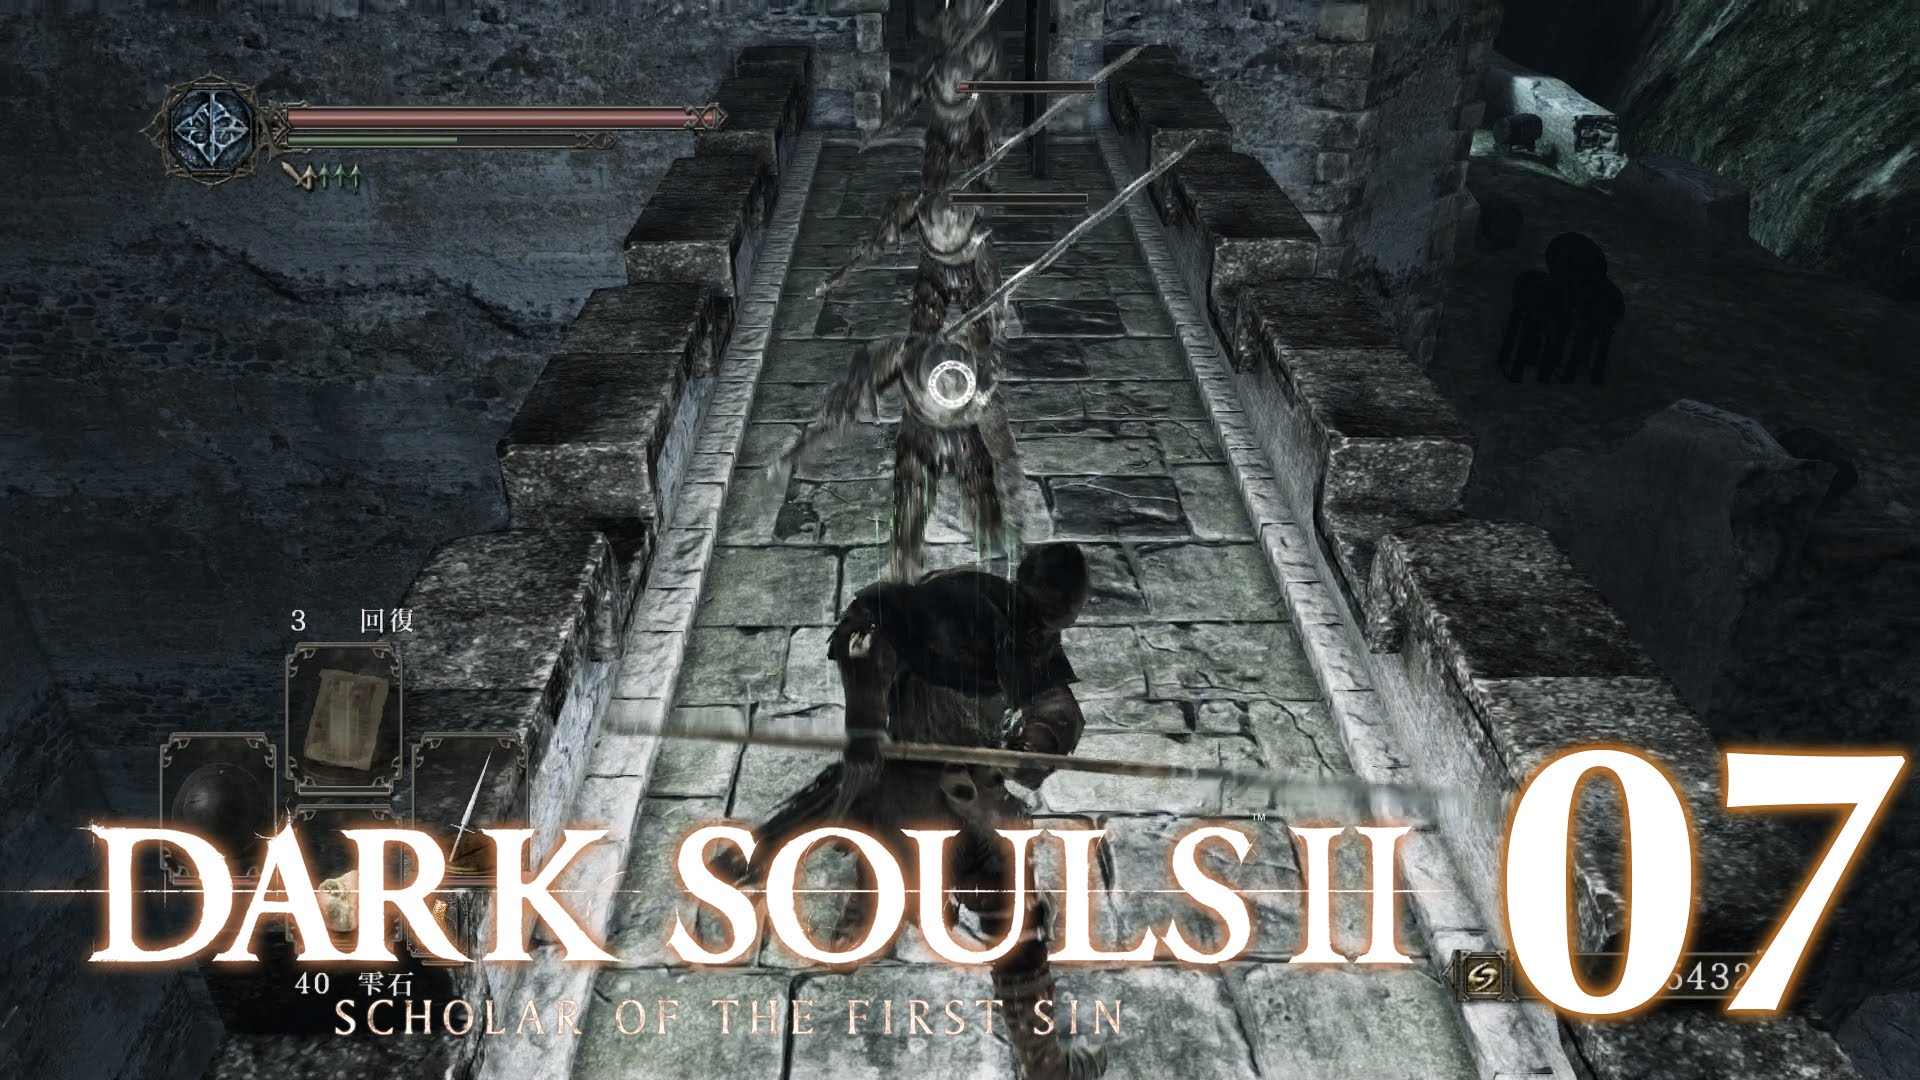 #07【PC版】SCHOLAR OF THE FIRST SIN   DARKSOULS Ⅱ【忘却の牢】